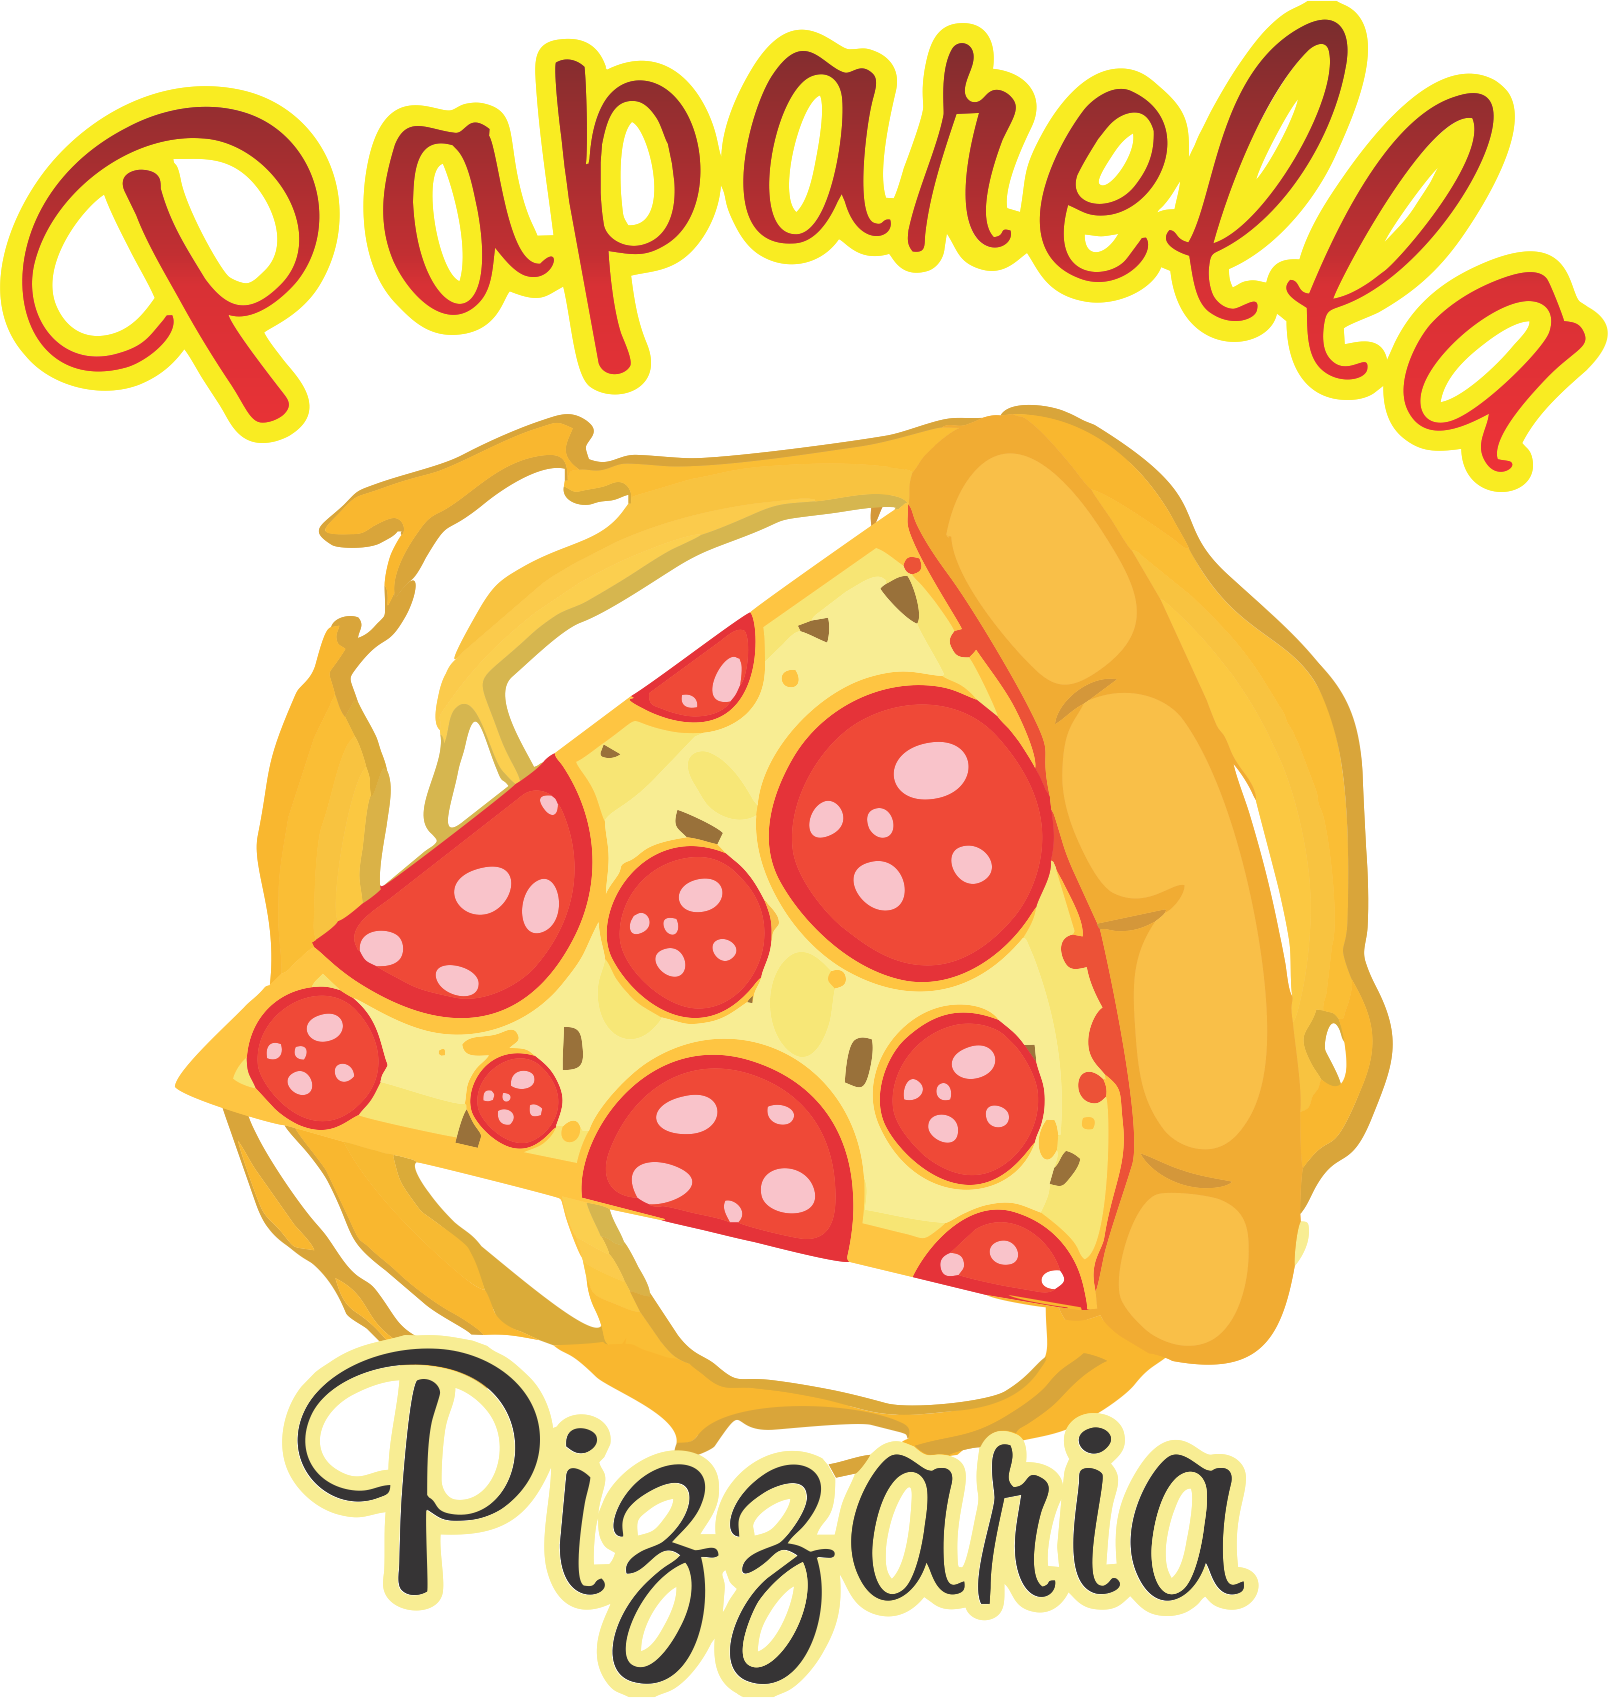 Pizzaria Paparella